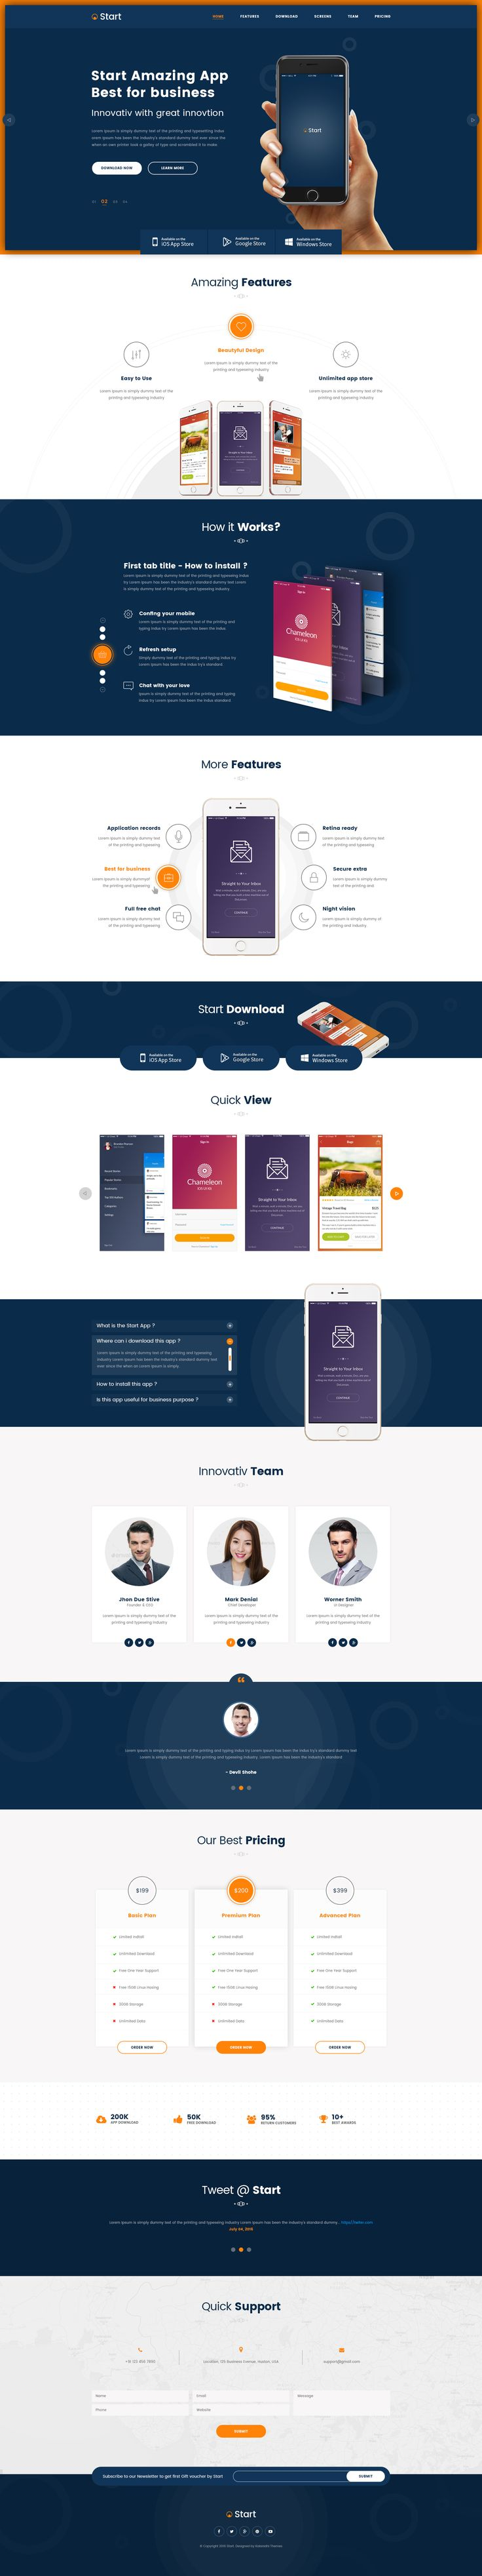 Start - App Landing Page PSD Template by Kalanidhithemes | ThemeForest